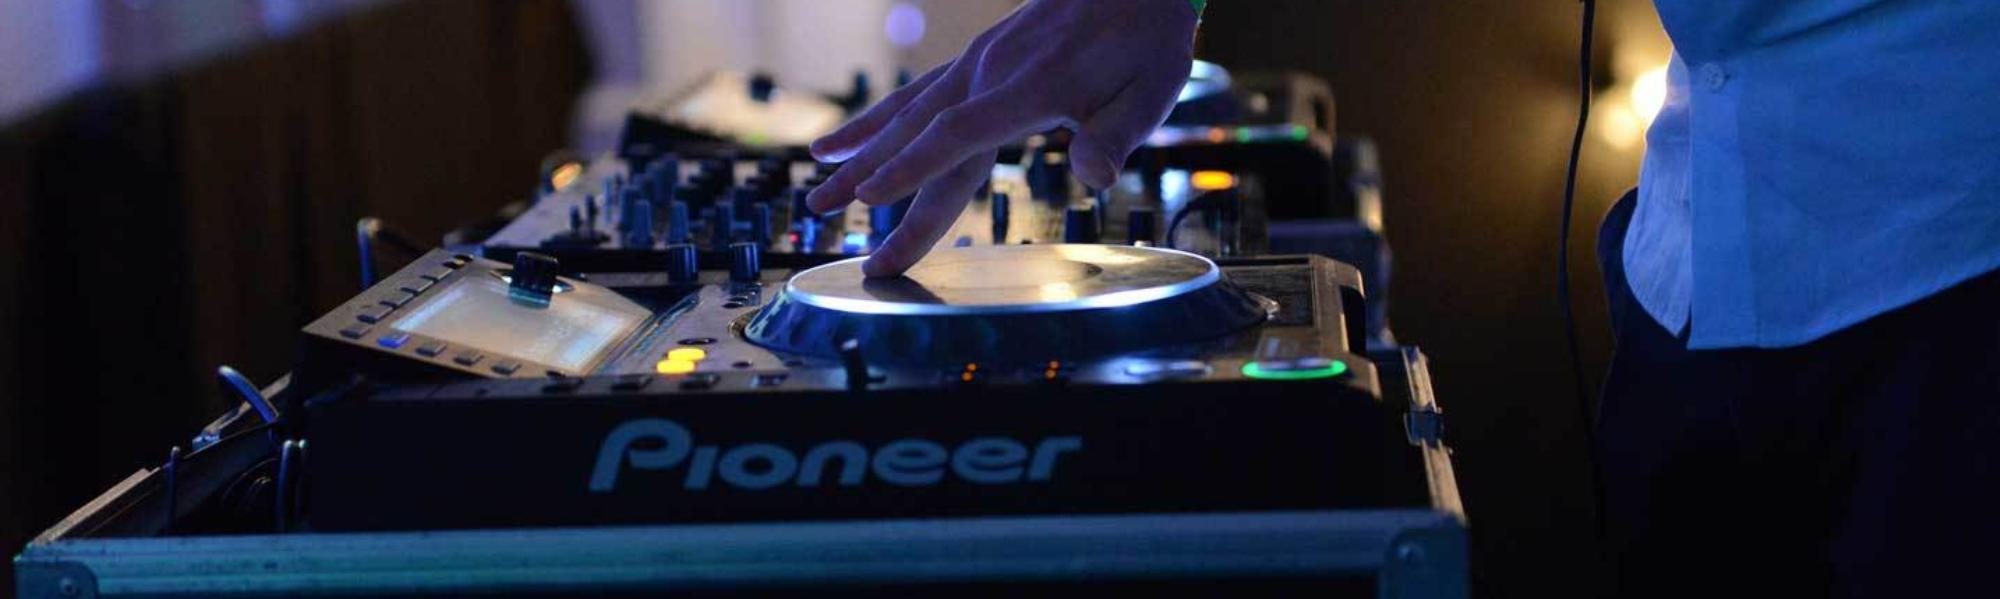 A Generation of DJs is Skilled in Marketing and Social Media, but not Music Production